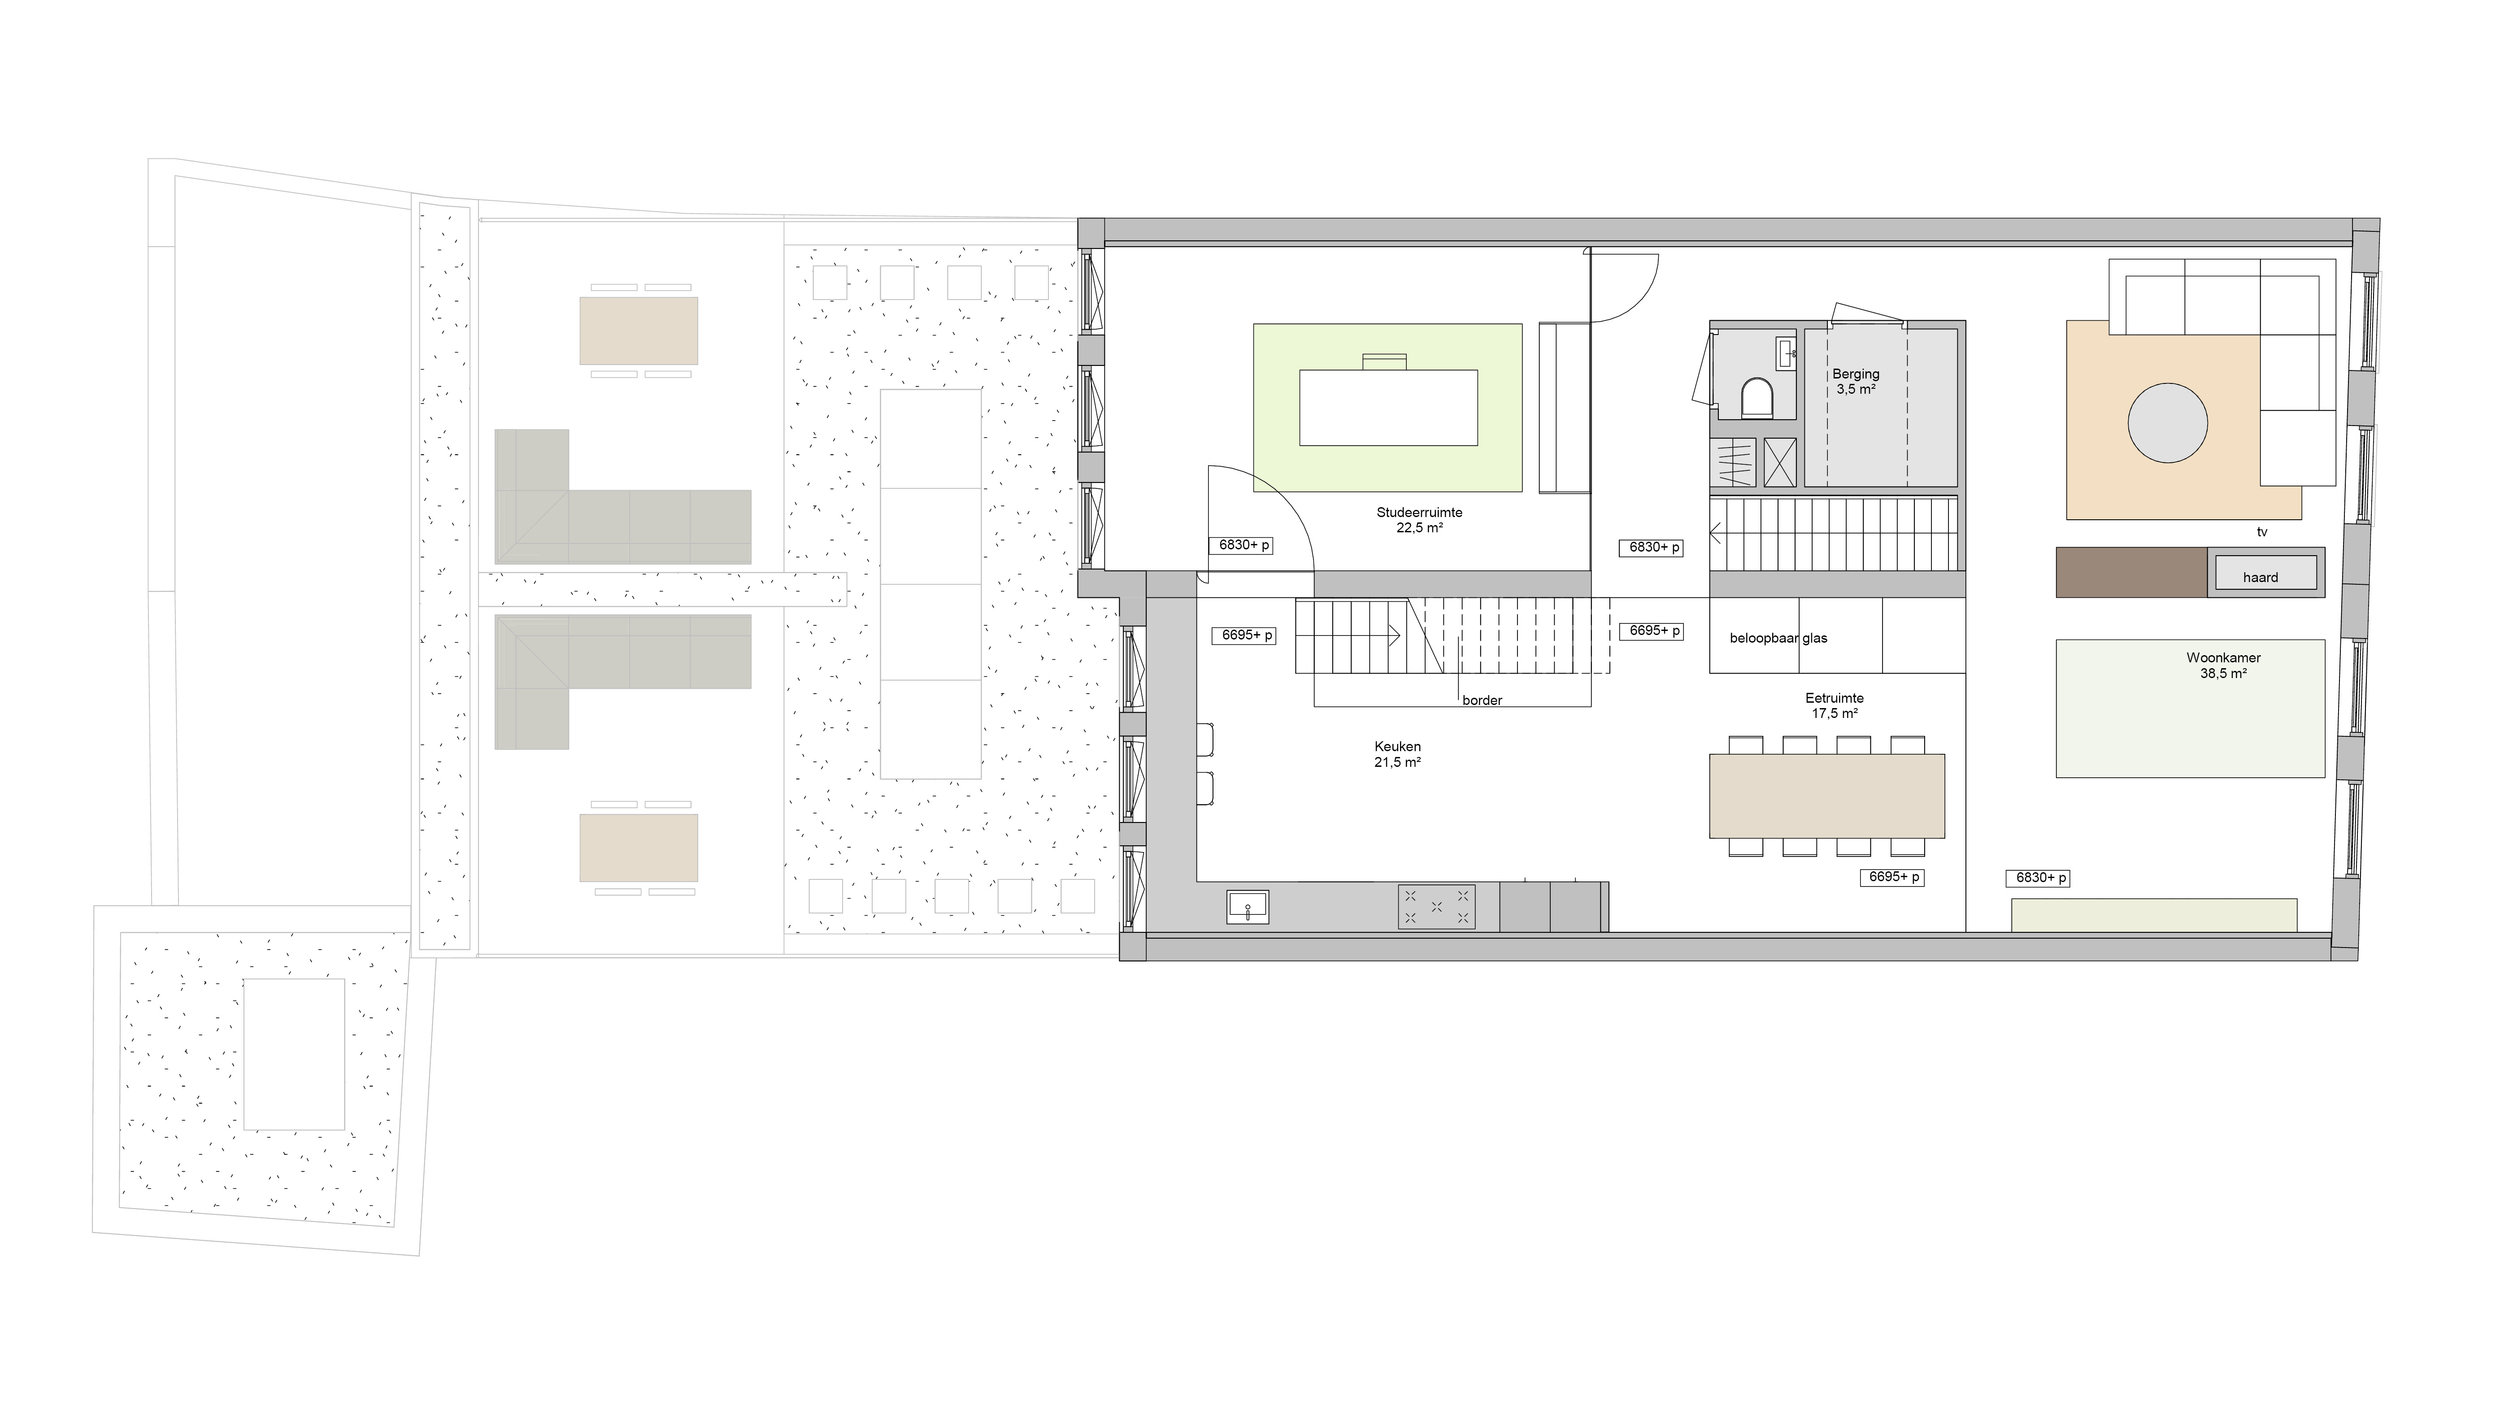 plan of the second floor, the living area of the penthouse with living room, storage, kitchen and study area